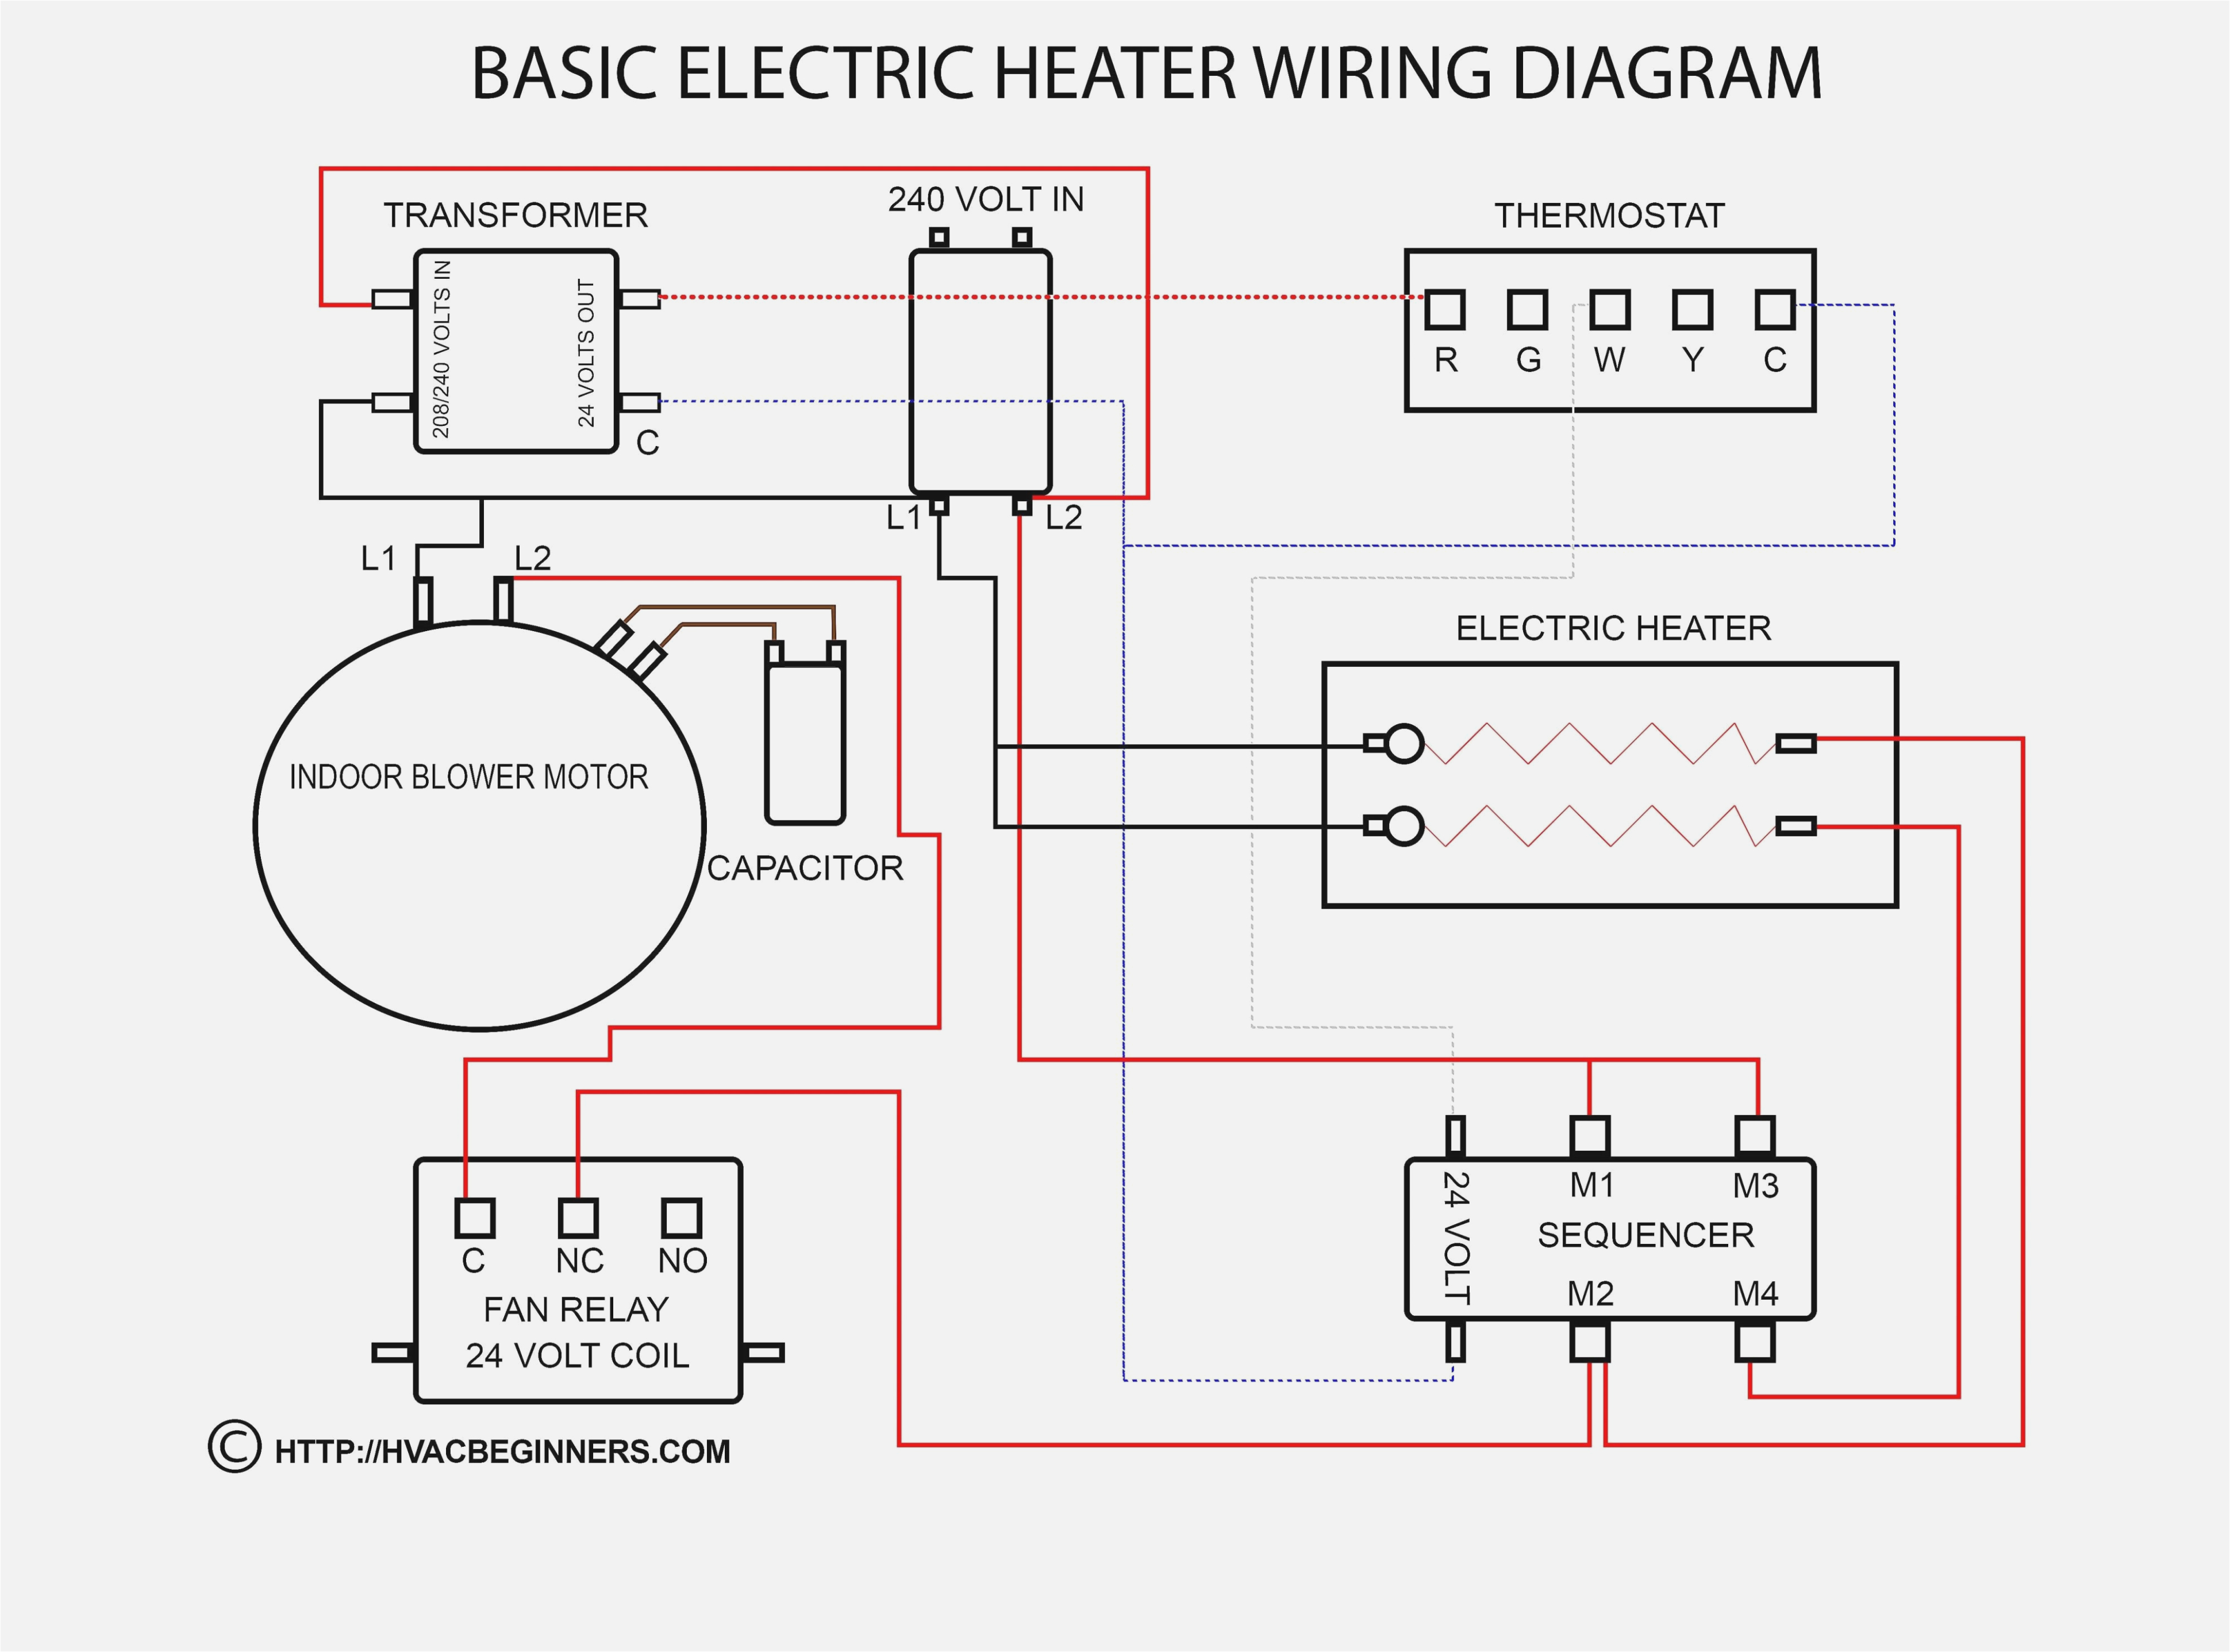 ac compressor schematic wiring diagram page ac compressor schematic